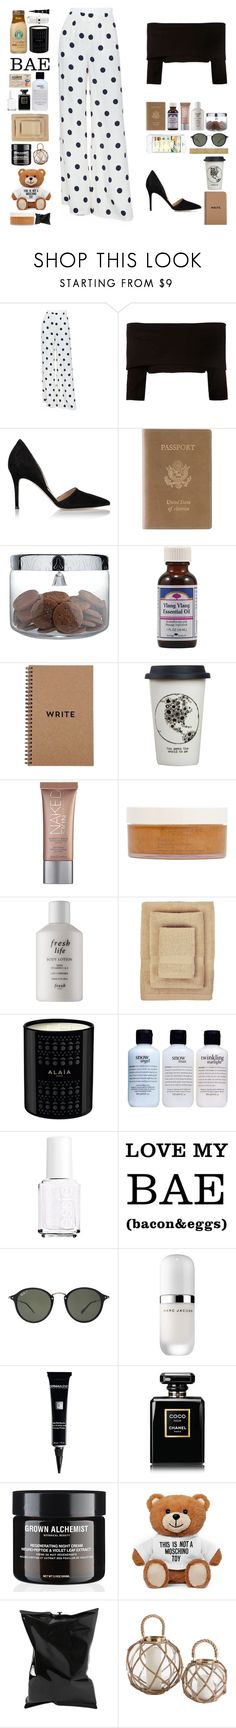 """""""Sem título #12002"""" by nathsouzaz ❤ liked on Polyvore featuring Ralph Lauren Collection, Dorothee Schumacher, Gianvito Rossi, Royce Leather, Alessi, Ylang Ylang, Natural Life, Urban Decay, African Botanics and Fresh"""